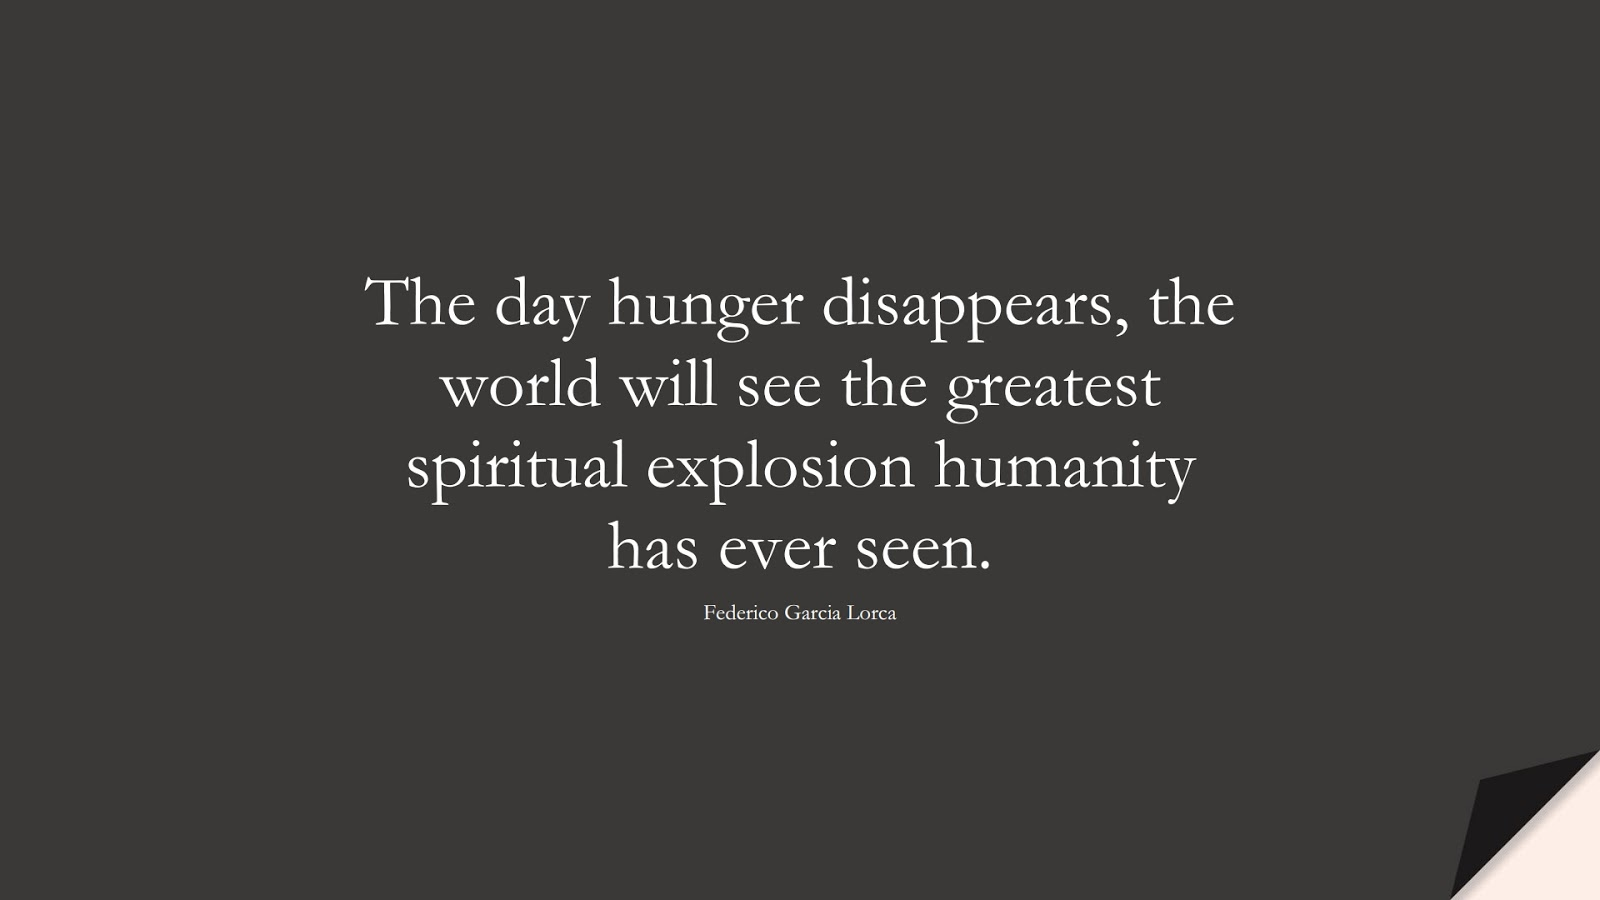 The day hunger disappears, the world will see the greatest spiritual explosion humanity has ever seen. (Federico Garcia Lorca);  #HumanityQuotes